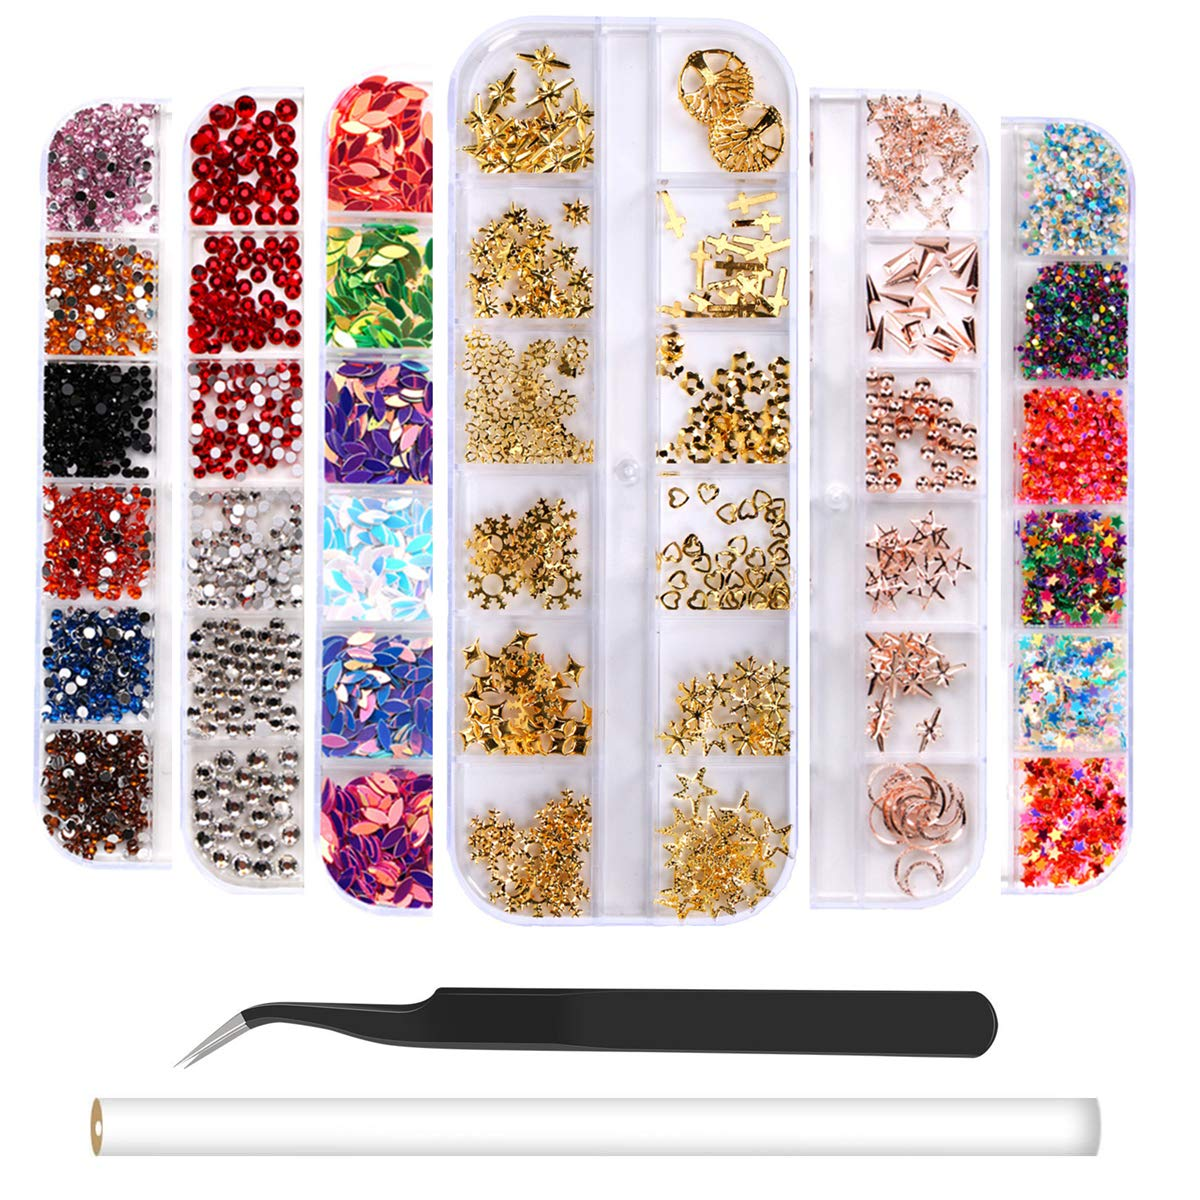 6 Boxes Nail Art Rhinestones Rose Gold Nail Rivets Studs, Charms Nail Sequins, 3D Nail Gems Decoration Kit, Multicolor Acrylic Crystals with Curved Tweezer, Pencil Picker by RFWIN